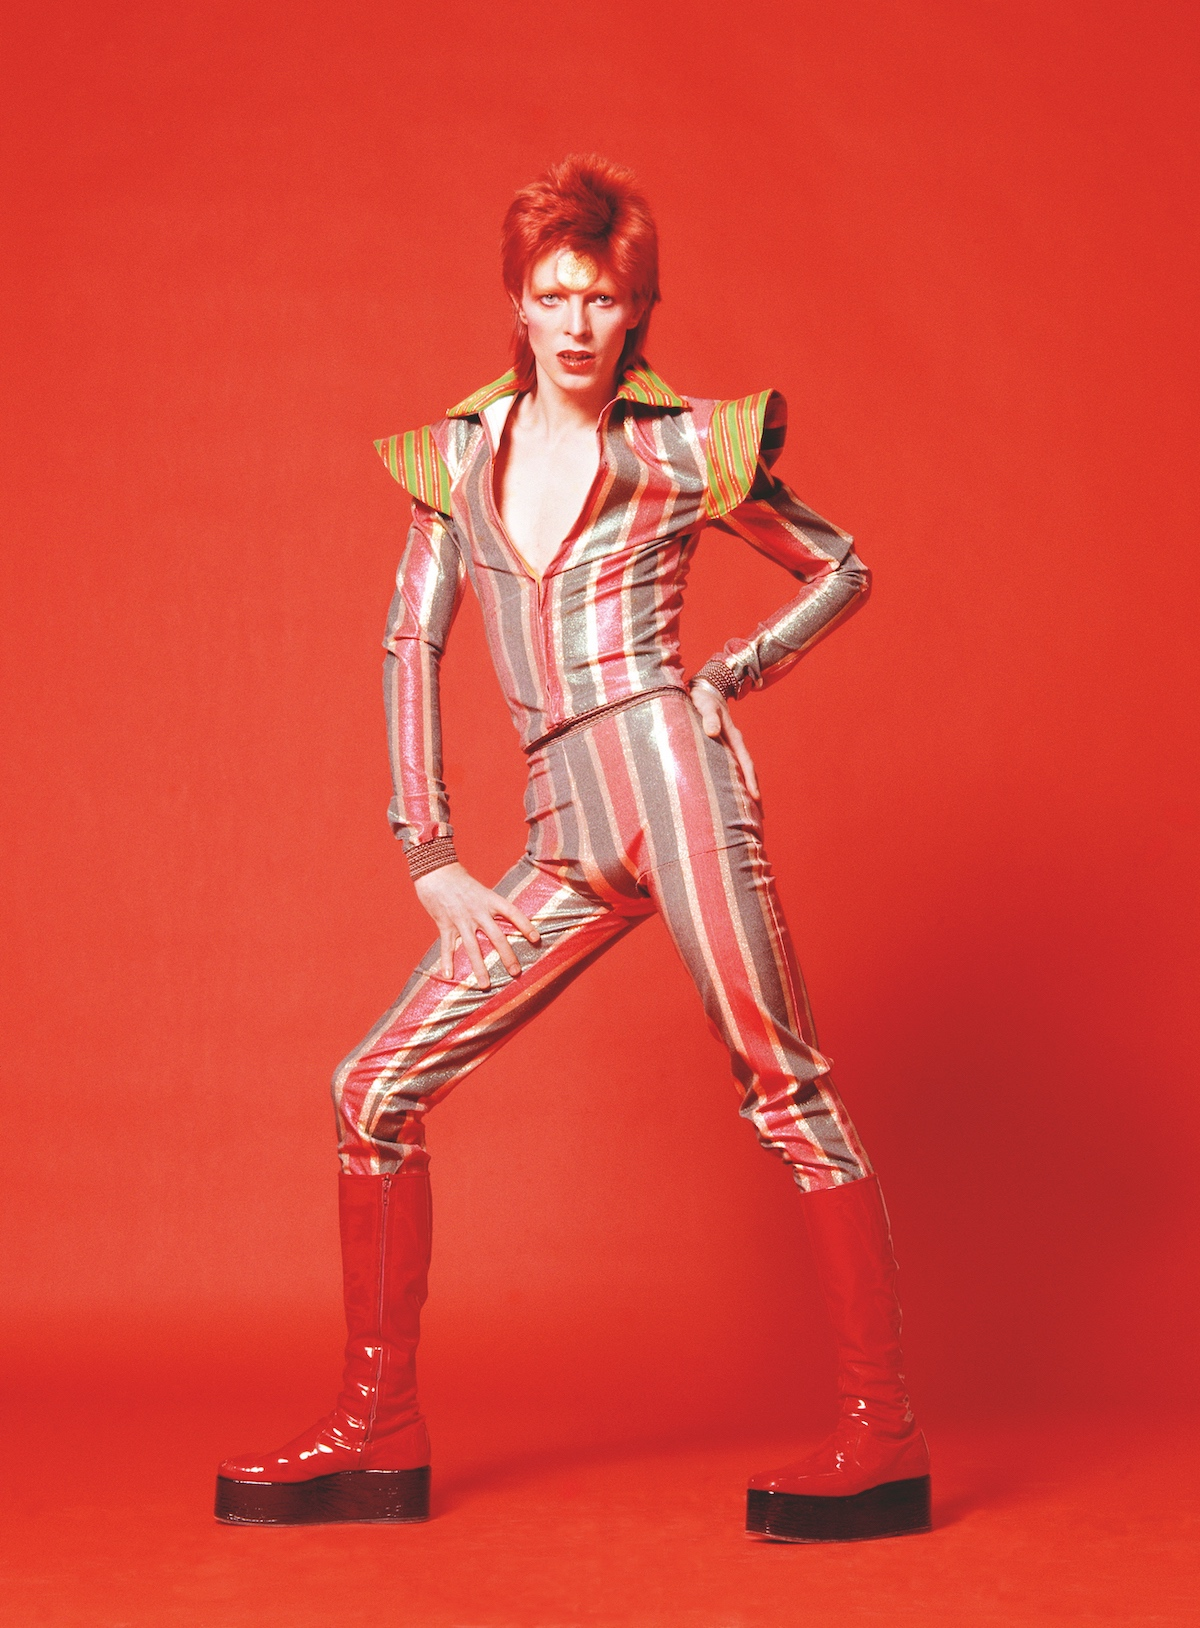 David Bowie in 1973 by Sukita